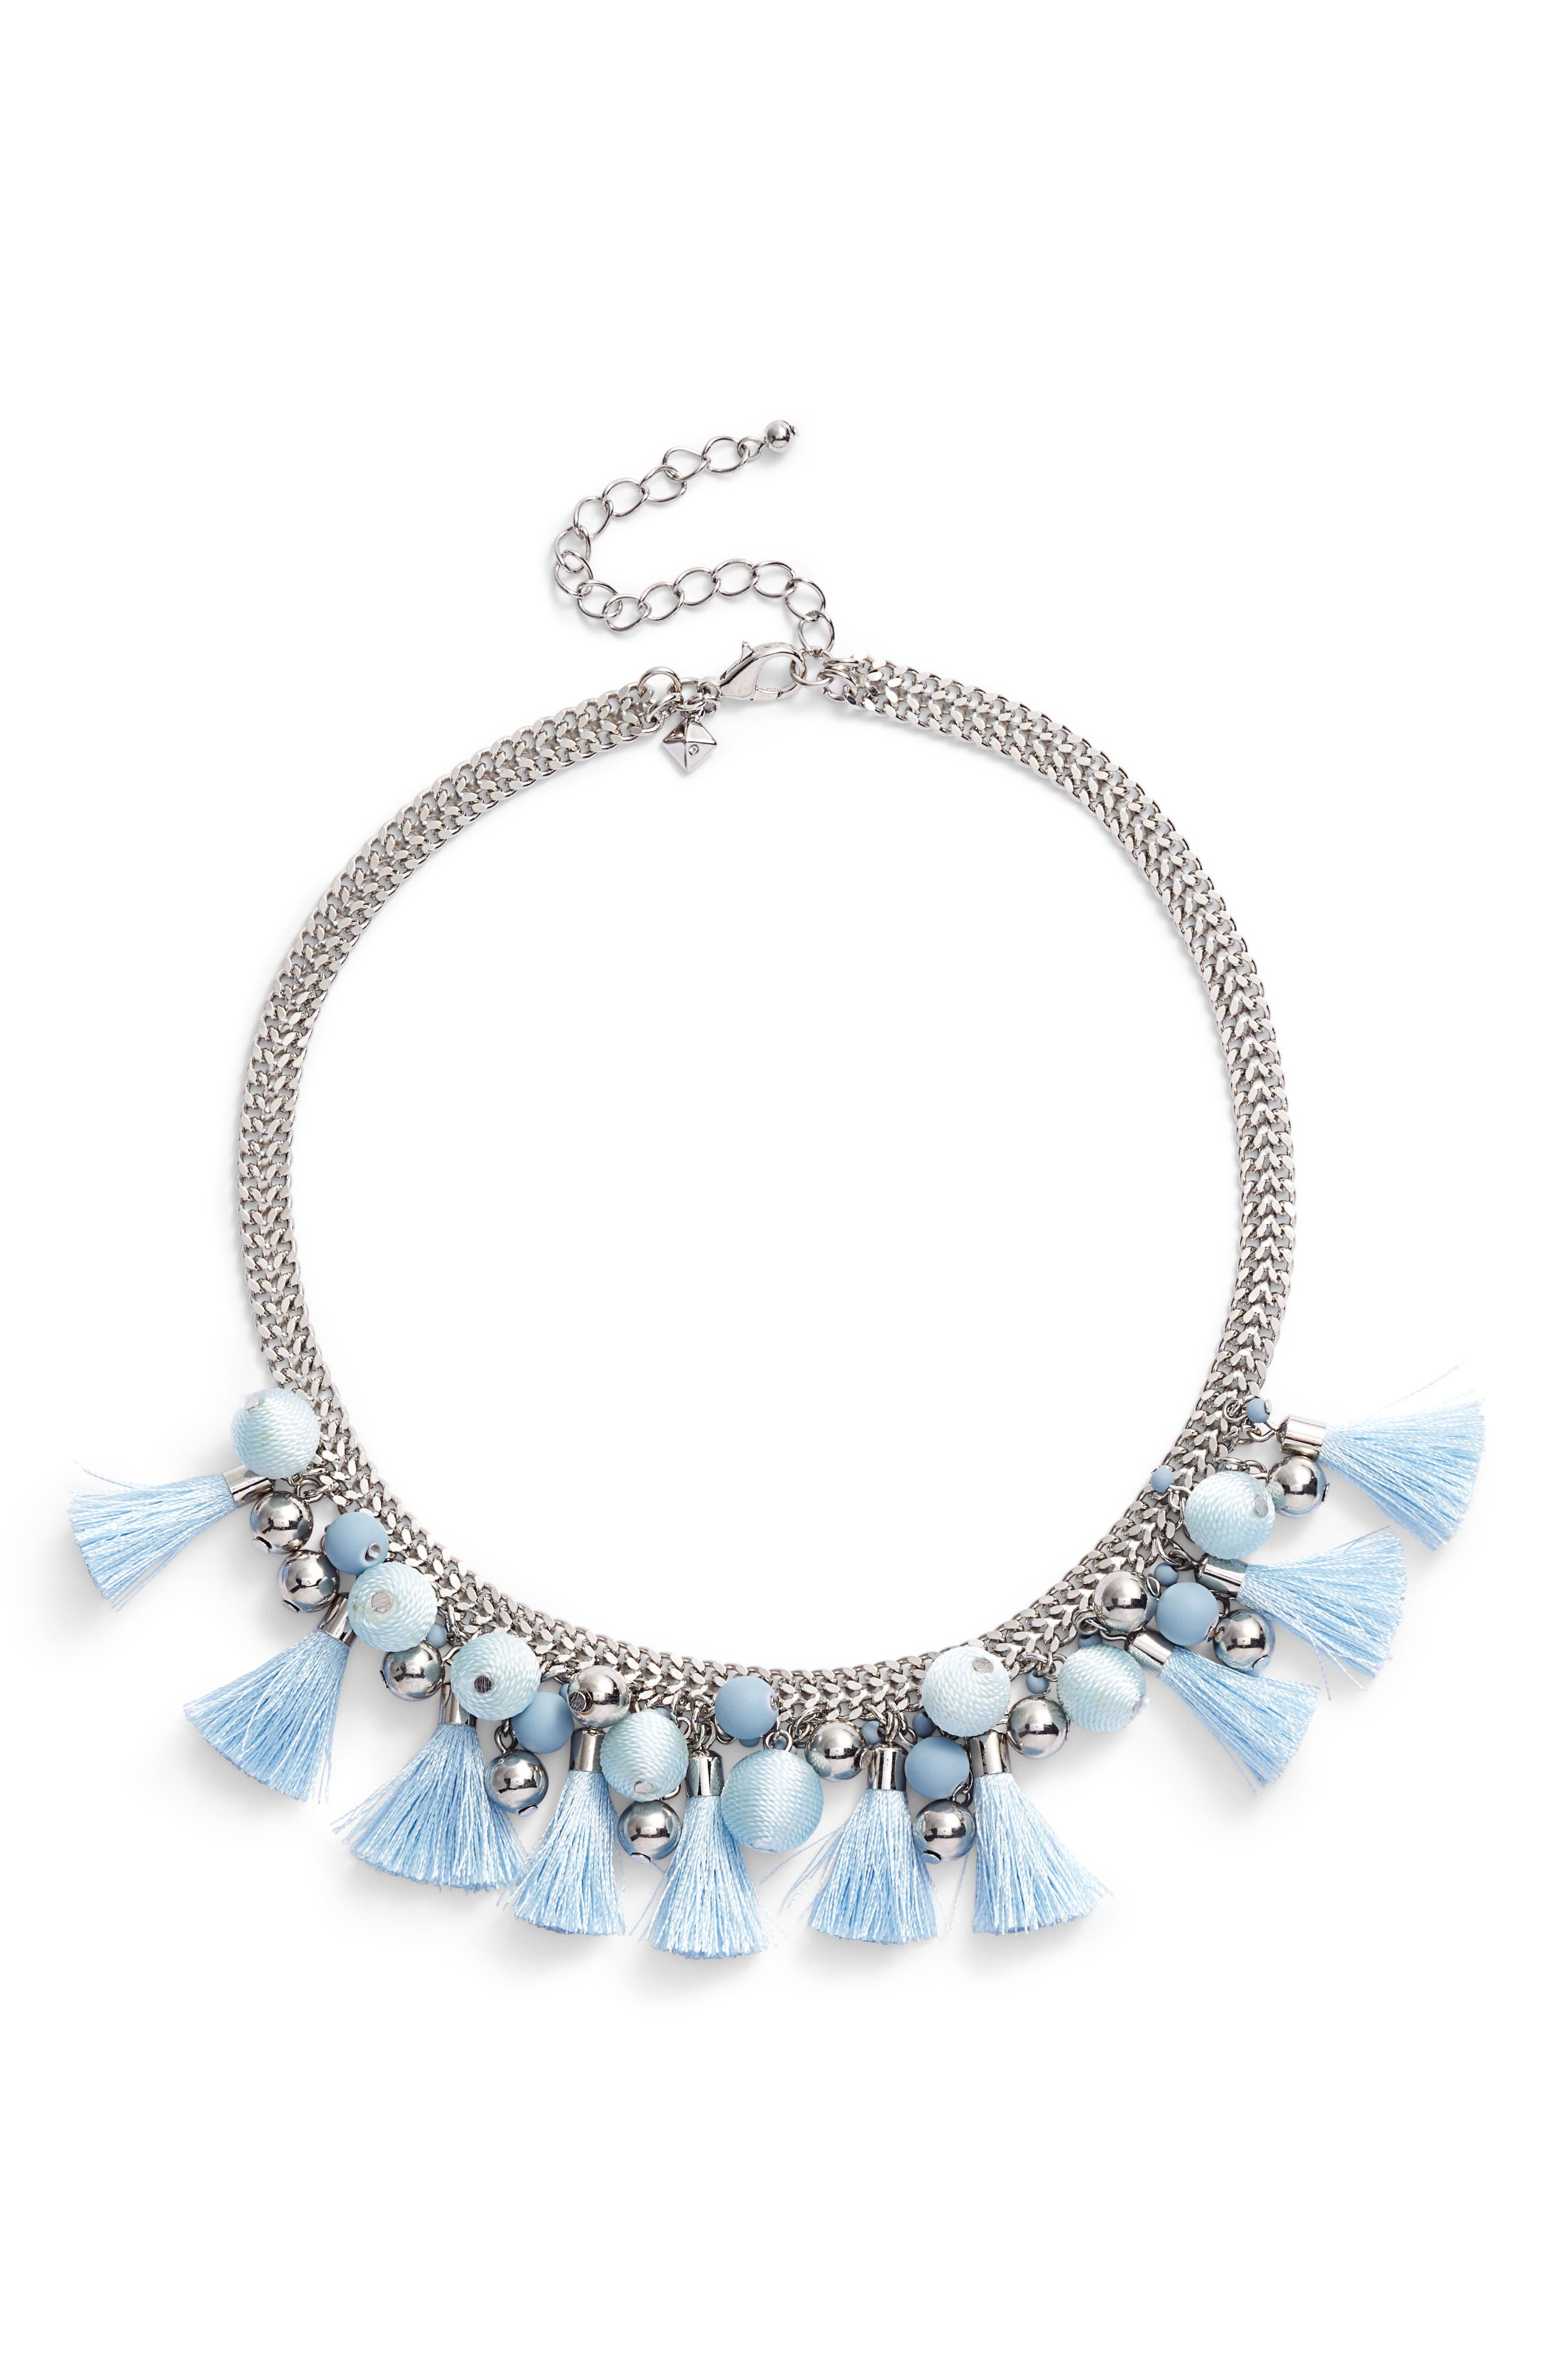 Bauble & Tassel Collar Necklace,                             Main thumbnail 1, color,                             Blue/ Silver